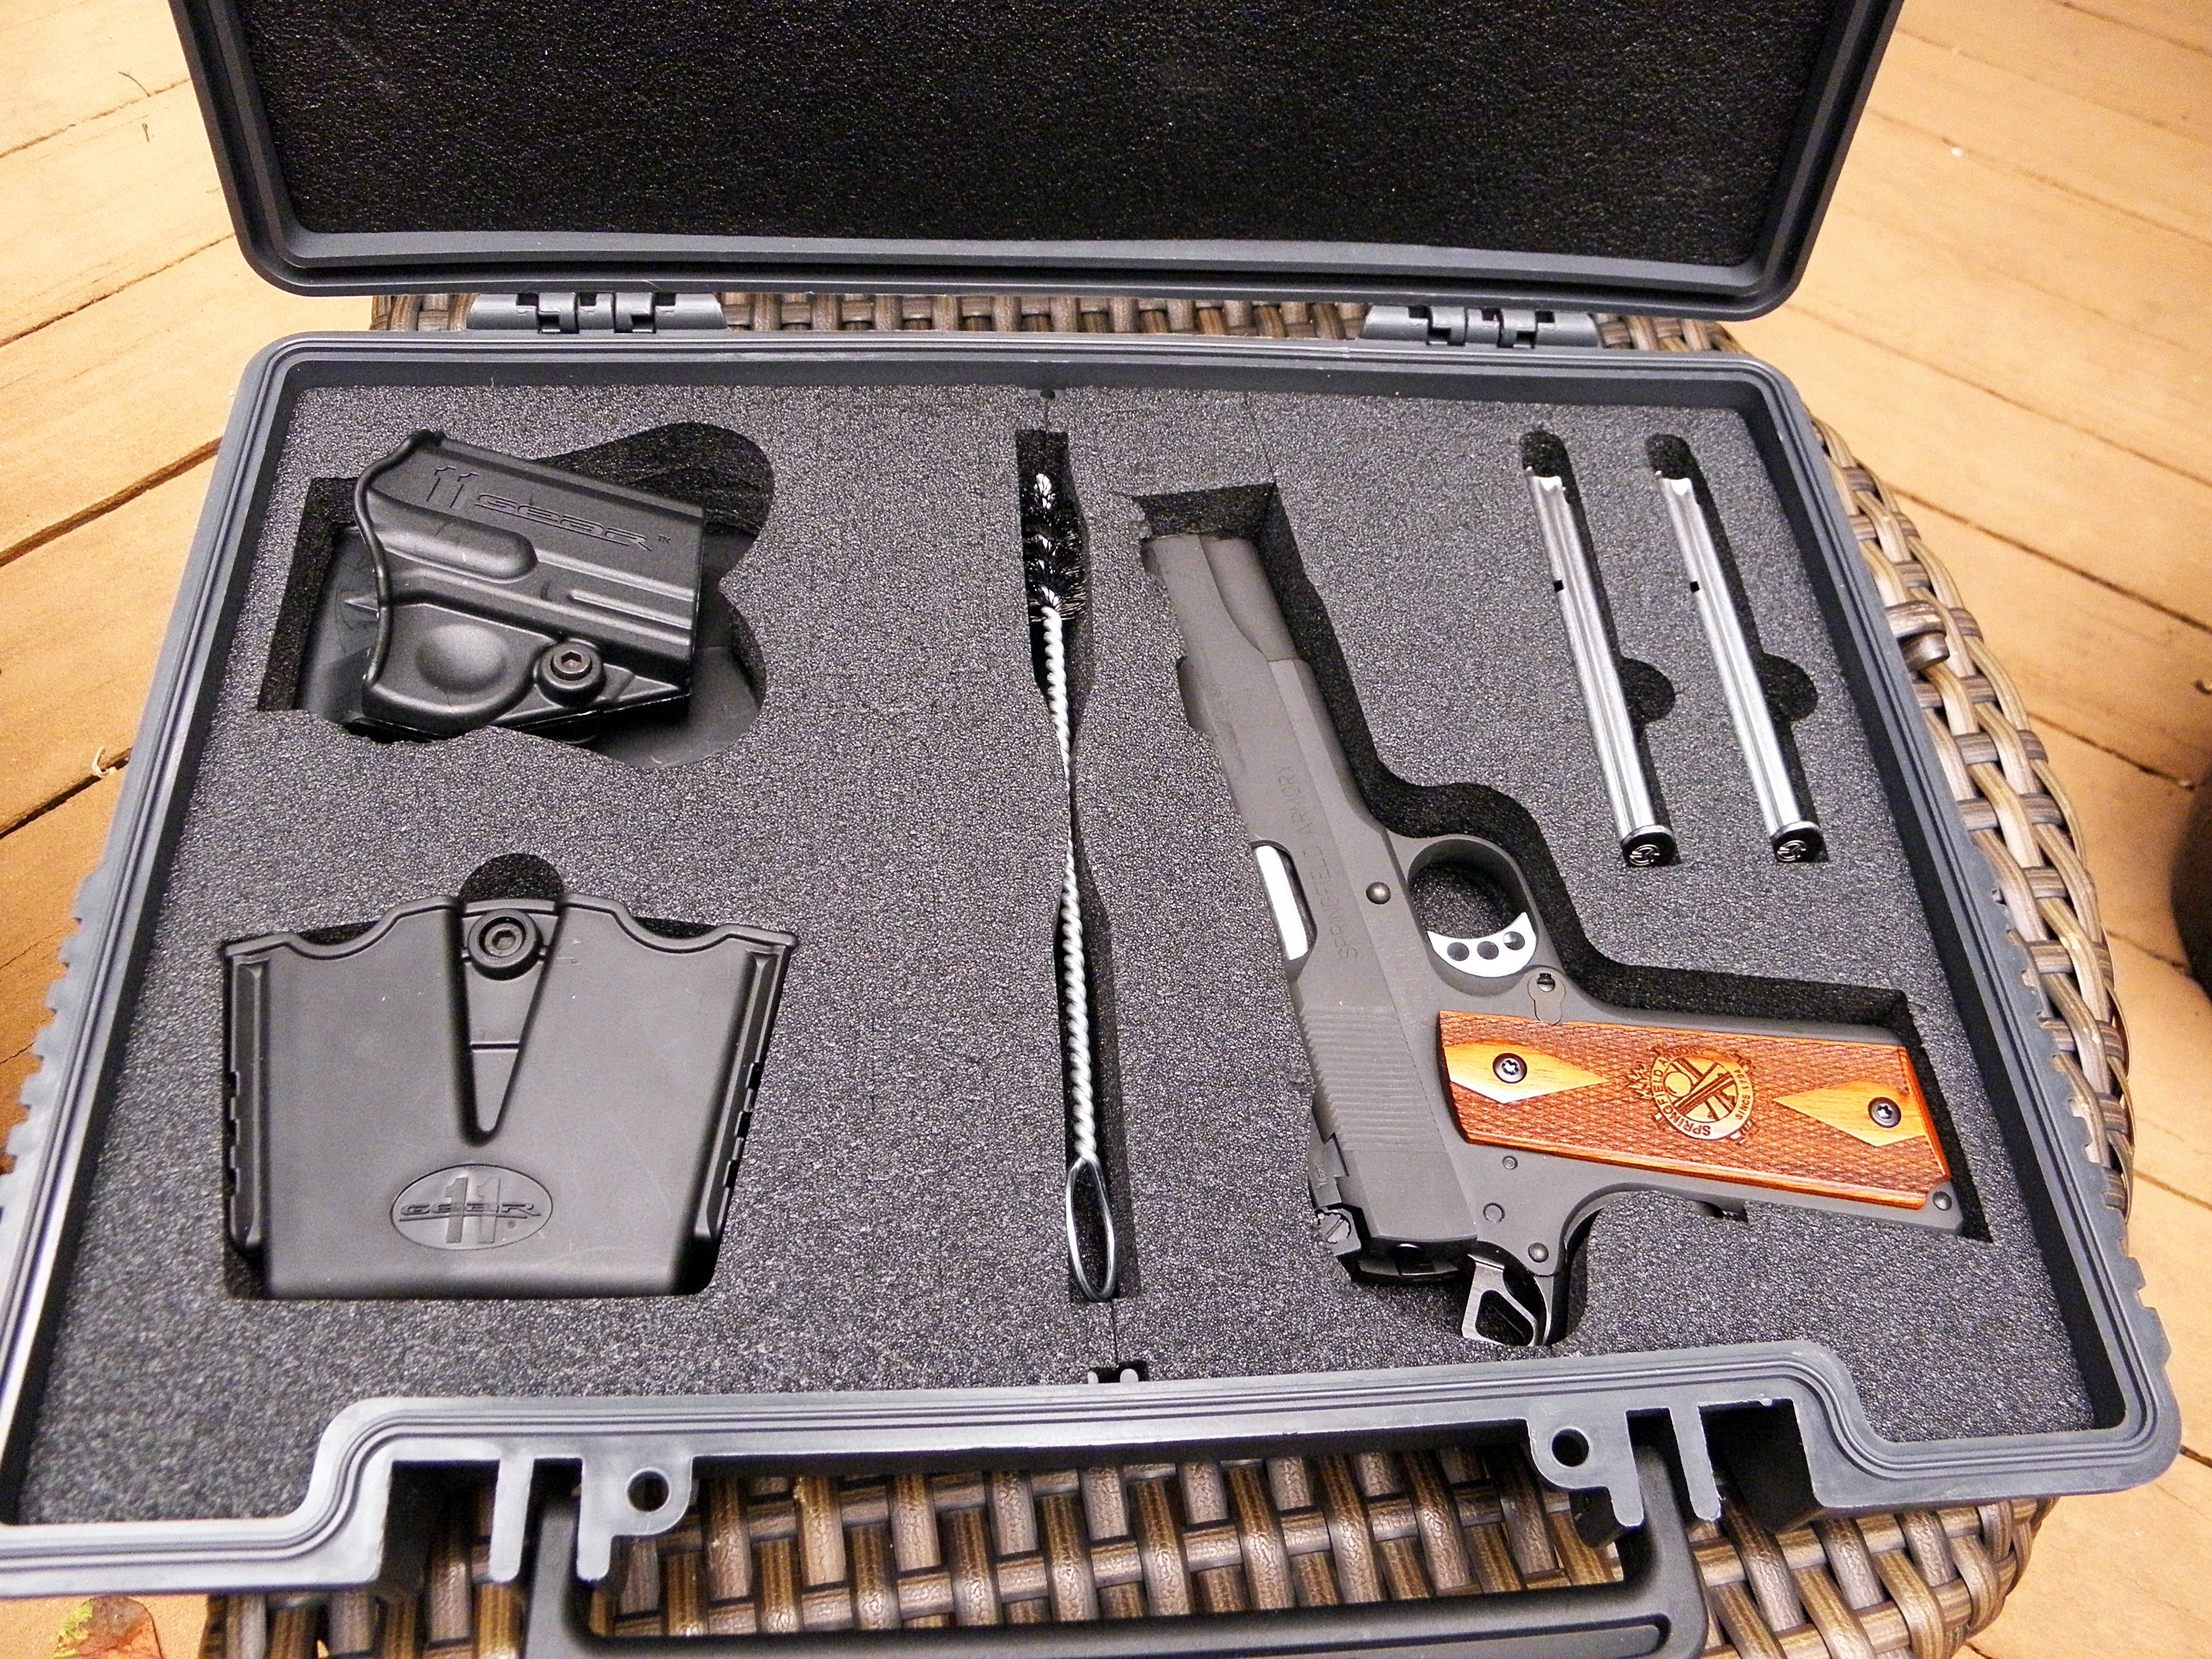 Springfield Armory 1911 Range Officer—SA does it again, this